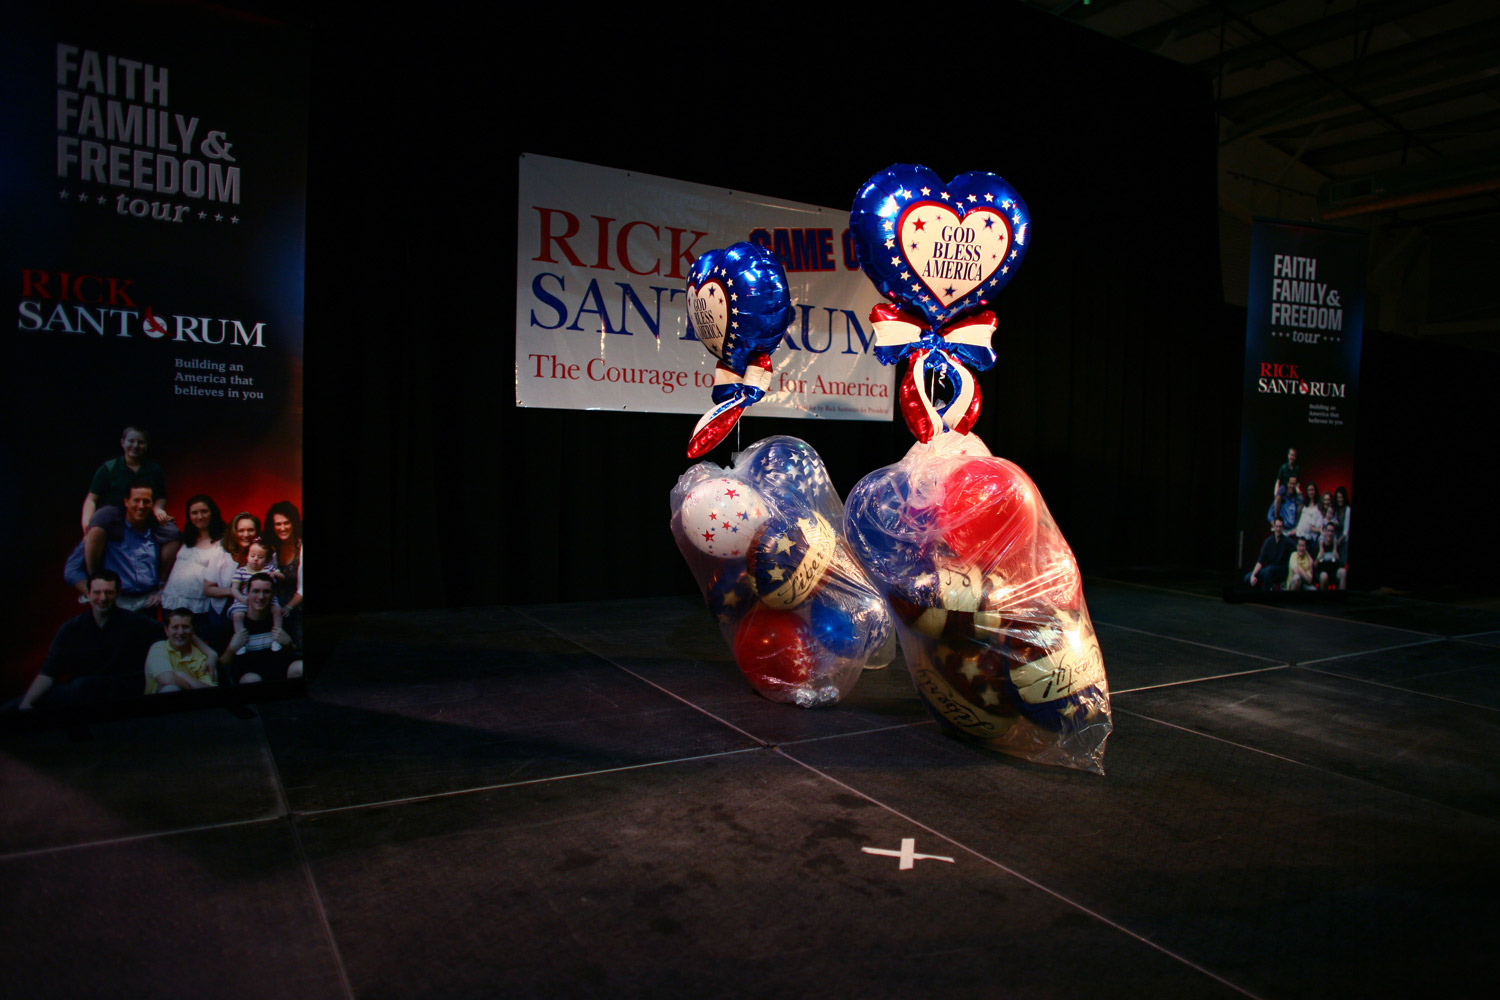 February 4, 2012. Balloons and signage are packed up for the next event for former Pennsylvania Sen. Rick Santorum, a candidate for the Republican presidential nomination, in Loveland, Colo.